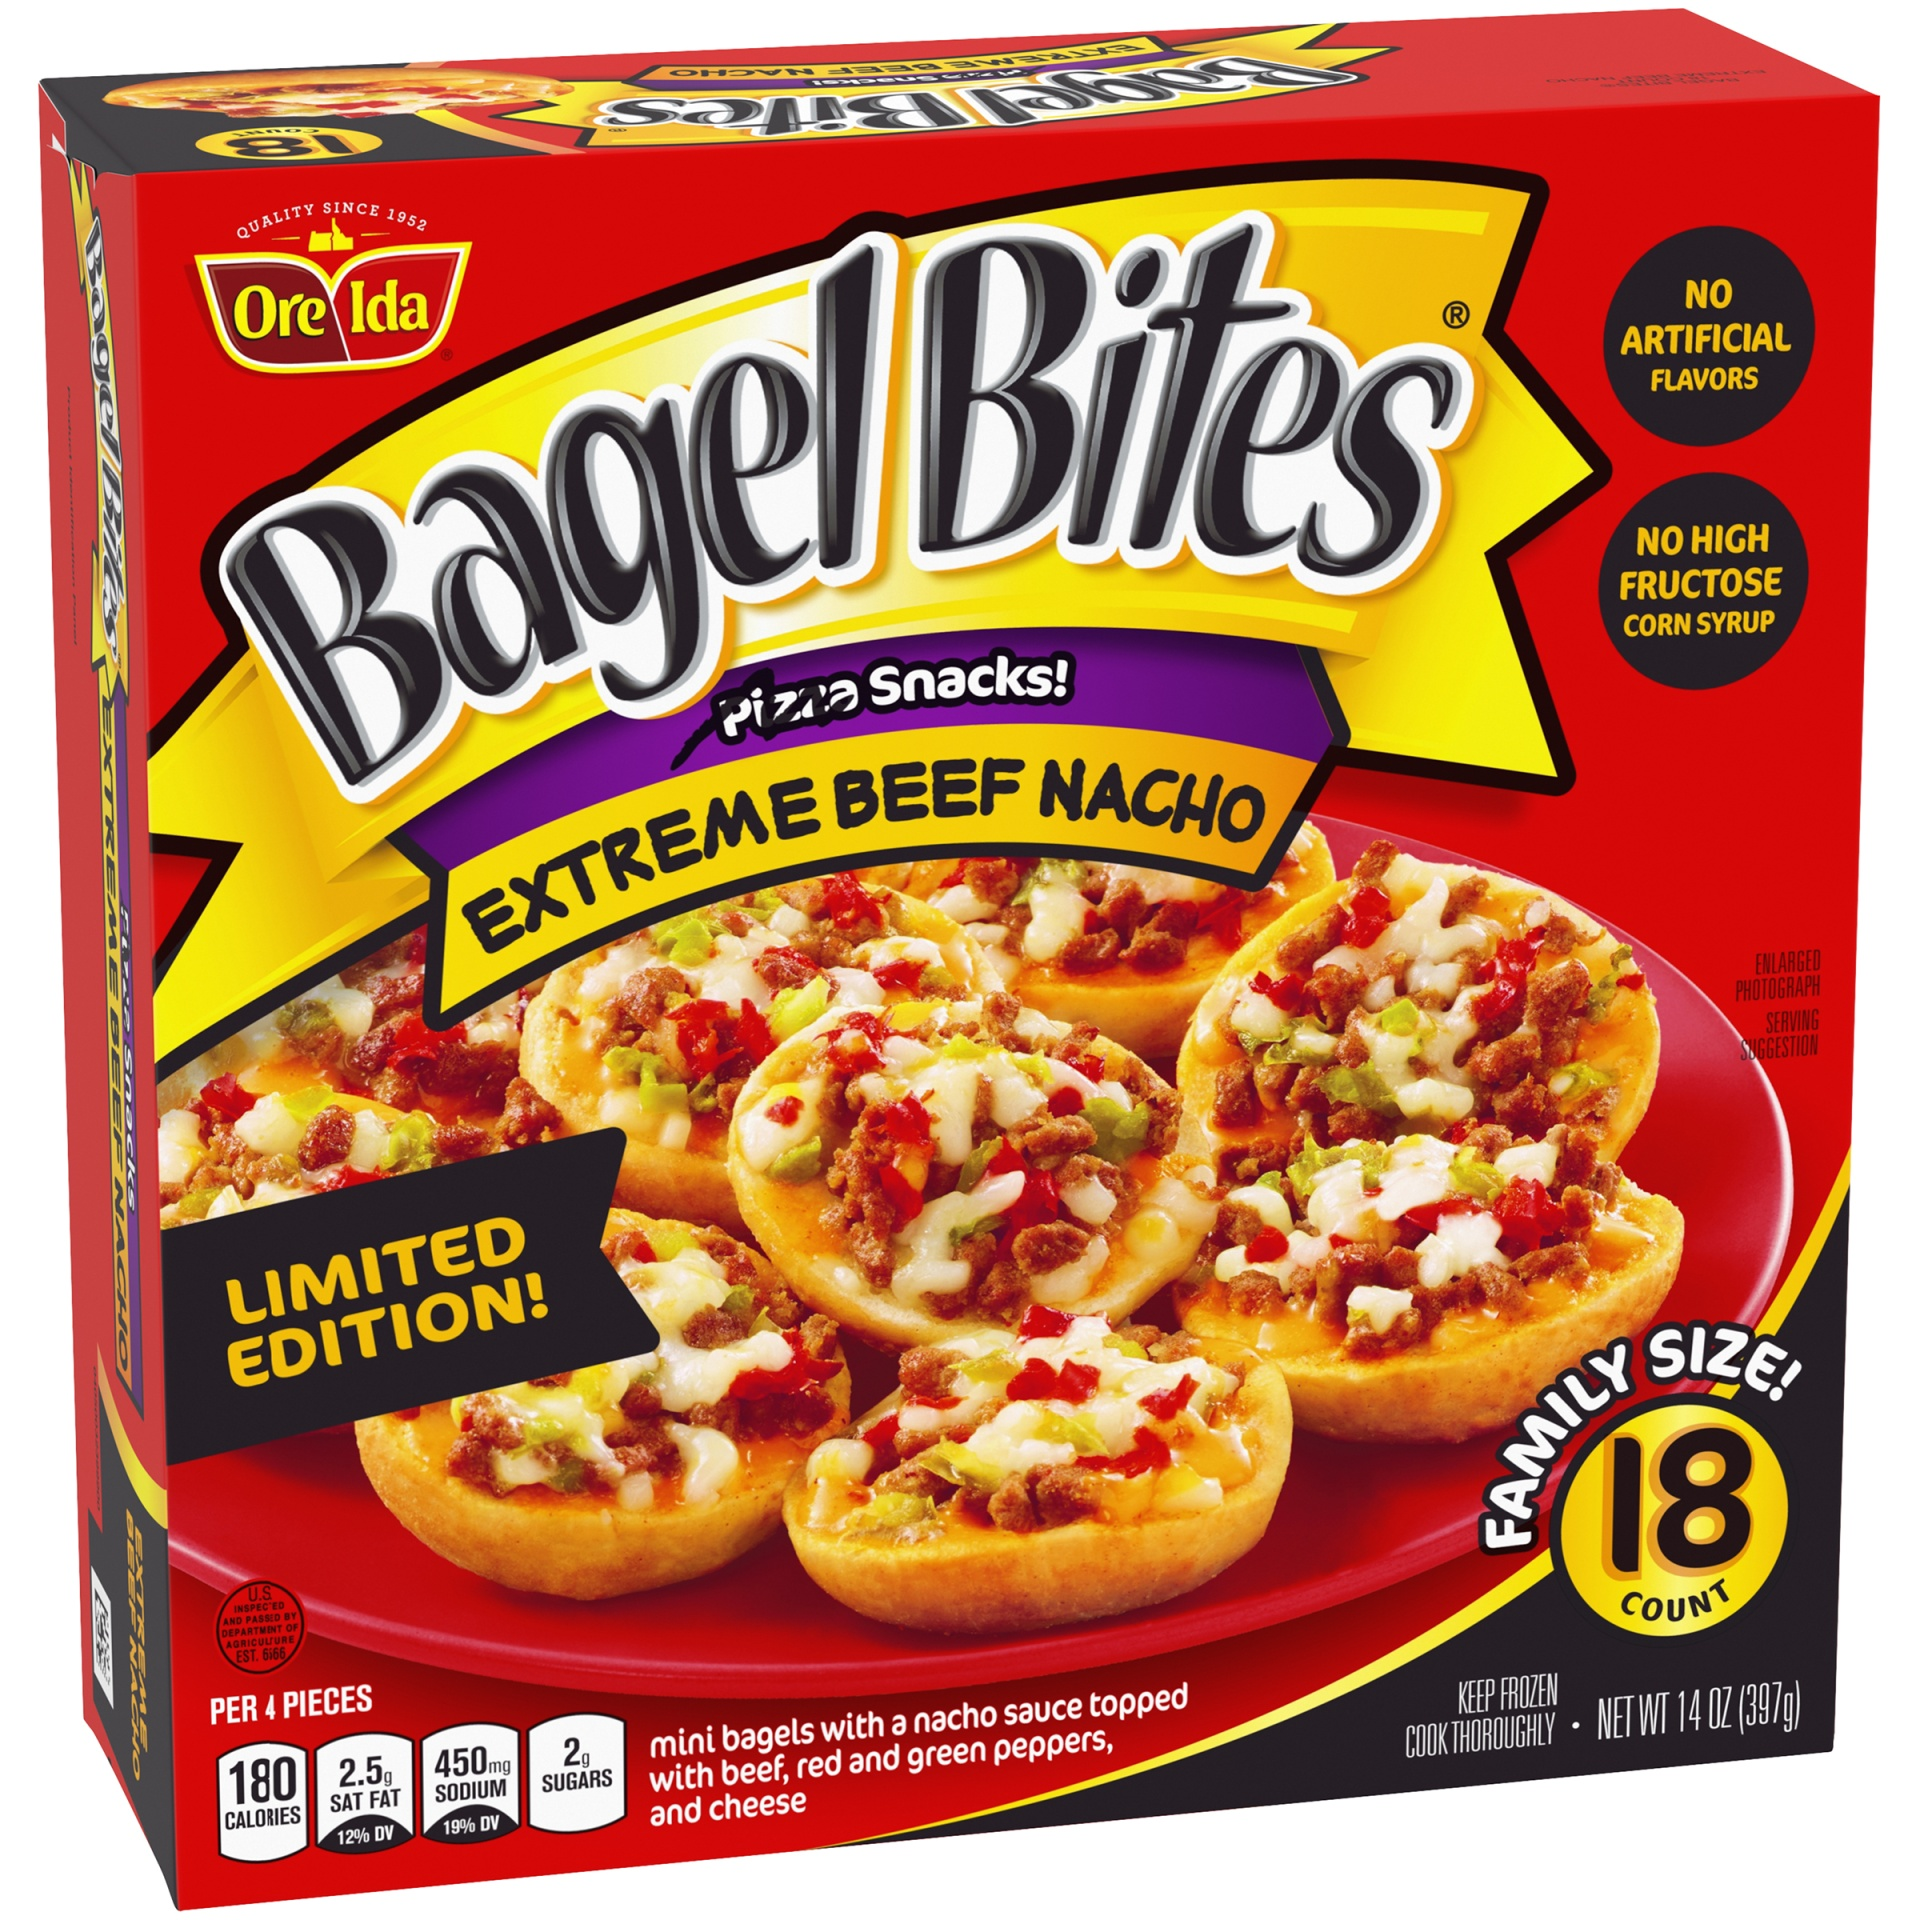 slide 2 of 6, Bagel Bites Frozen Pizza & Appetizers Extreme Beef Nacho,